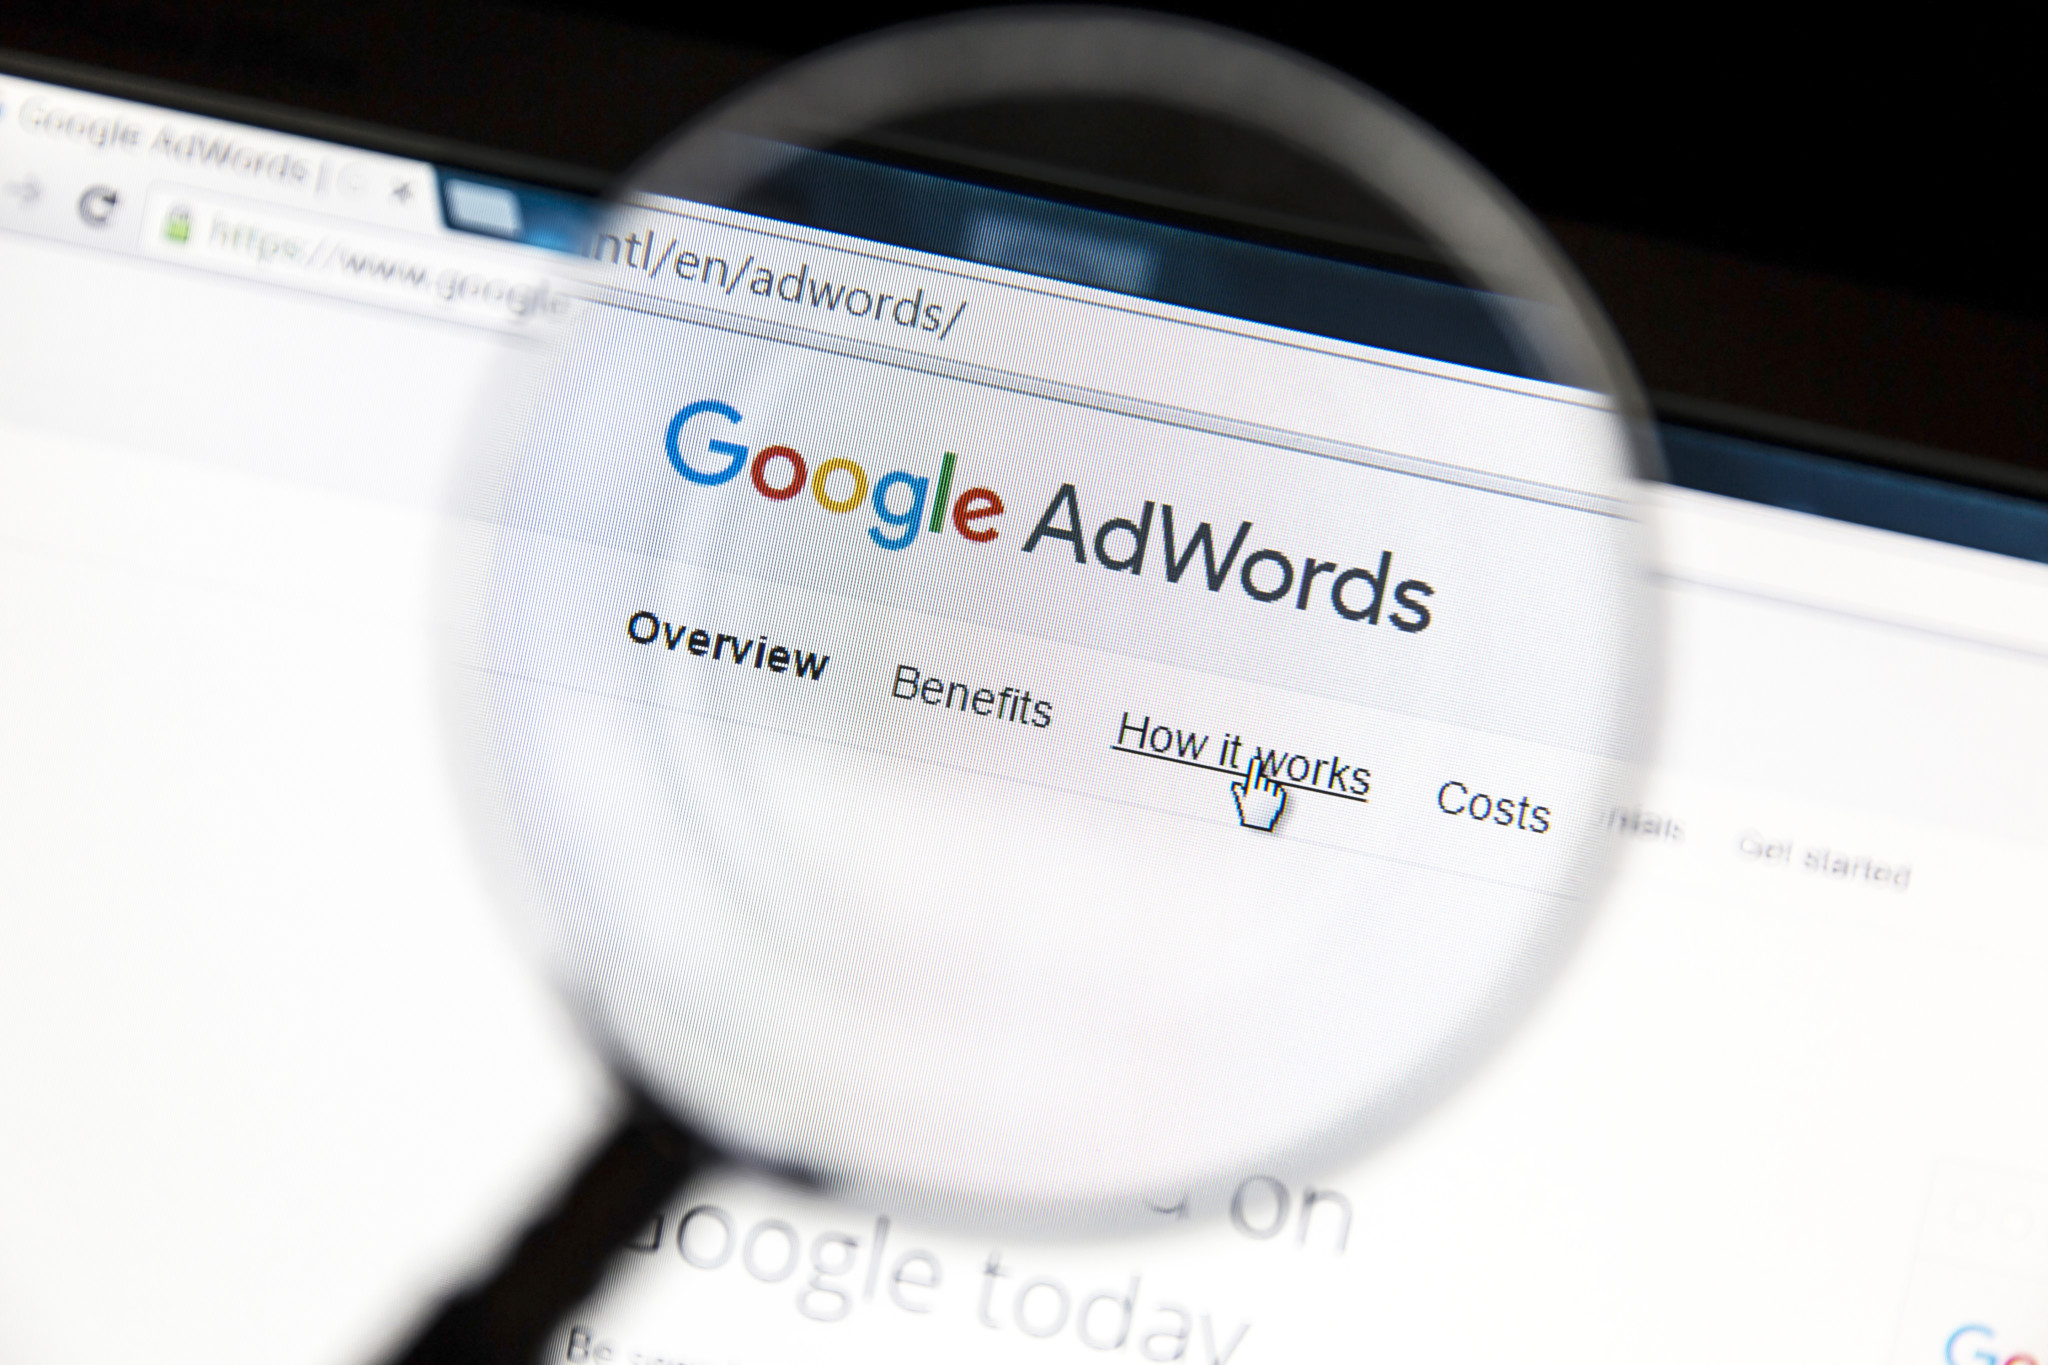 google ad words